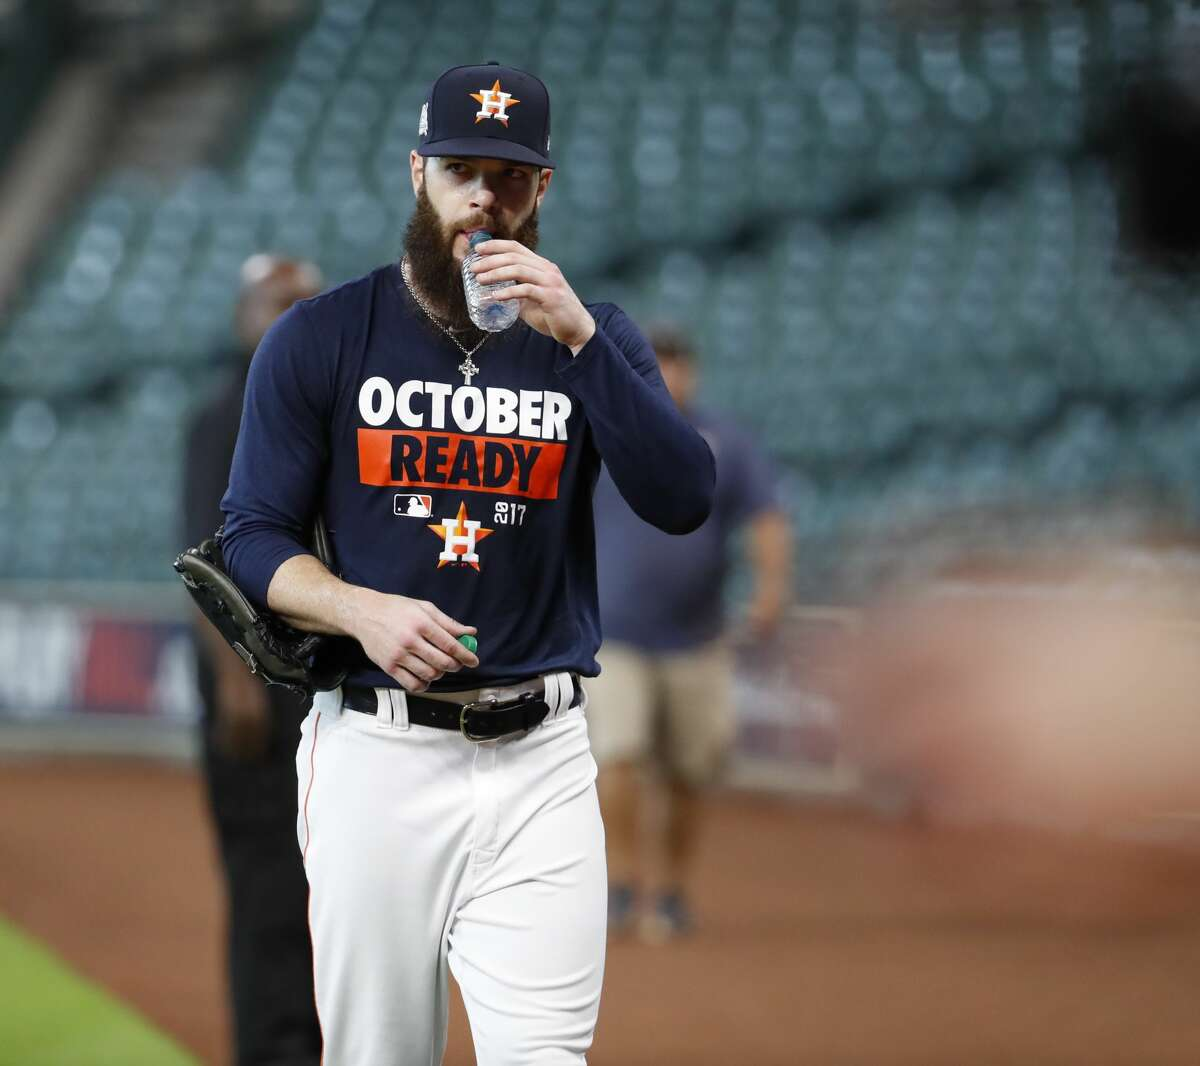 Houston Astros pitcher Dallas Keuchel during batting practice at Minute Maid Park, Wednesday, Oct. 4, 2017, in Houston, as they prepare to take on the Boston Red Sox in the ALDS playoffs. ( Karen Warren / Houston Chronicle )